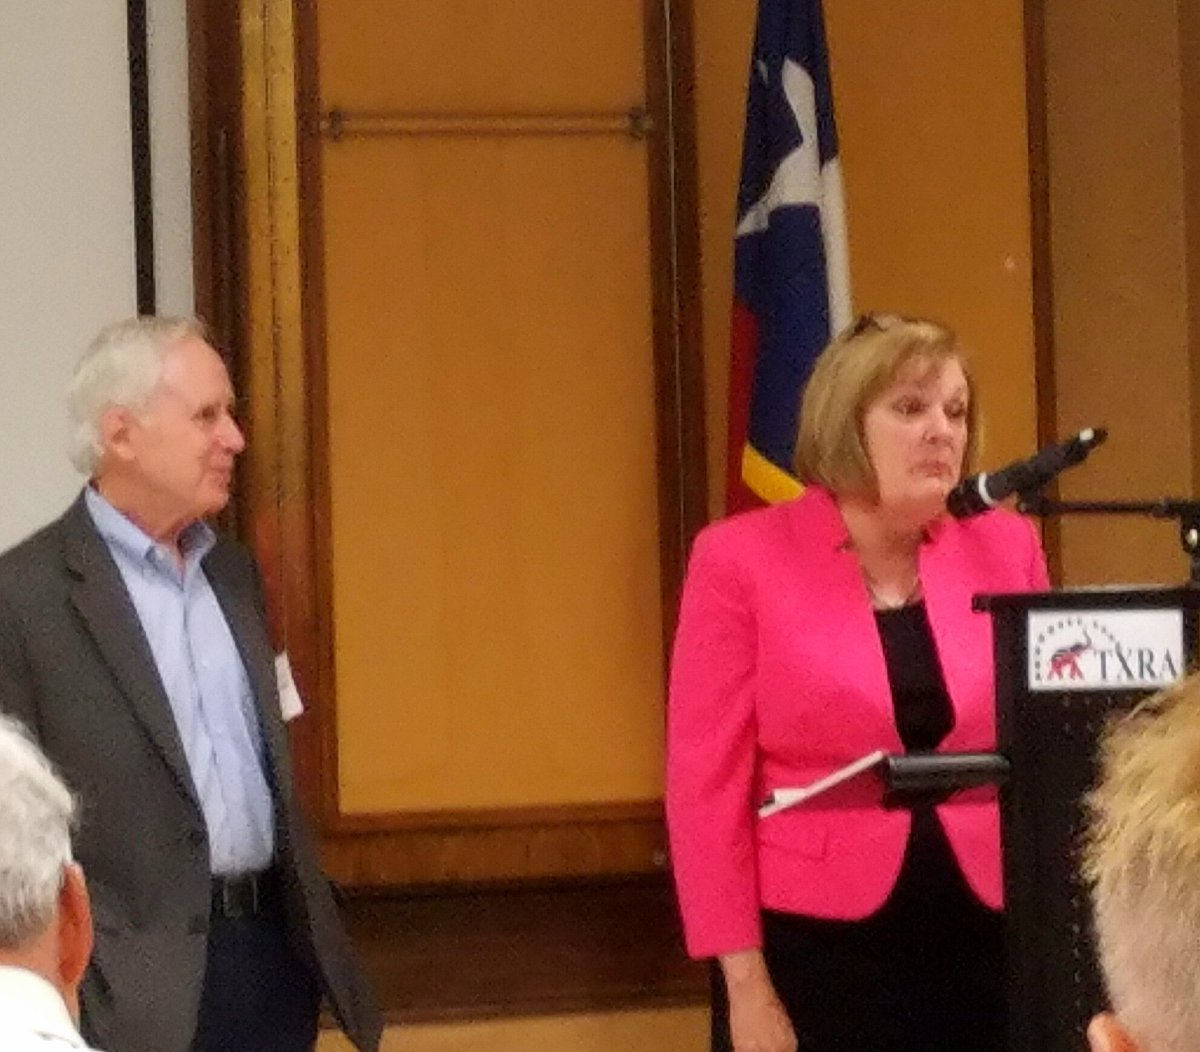 Fav StateRep @StephanieKlick at #TXRA #TexasRepublicanAssembly State convention well organized and well attended #Resolutions @SteveHollern<br>http://pic.twitter.com/tZddyXYEf1 &ndash; bij Botanical Gardens Banquet Room